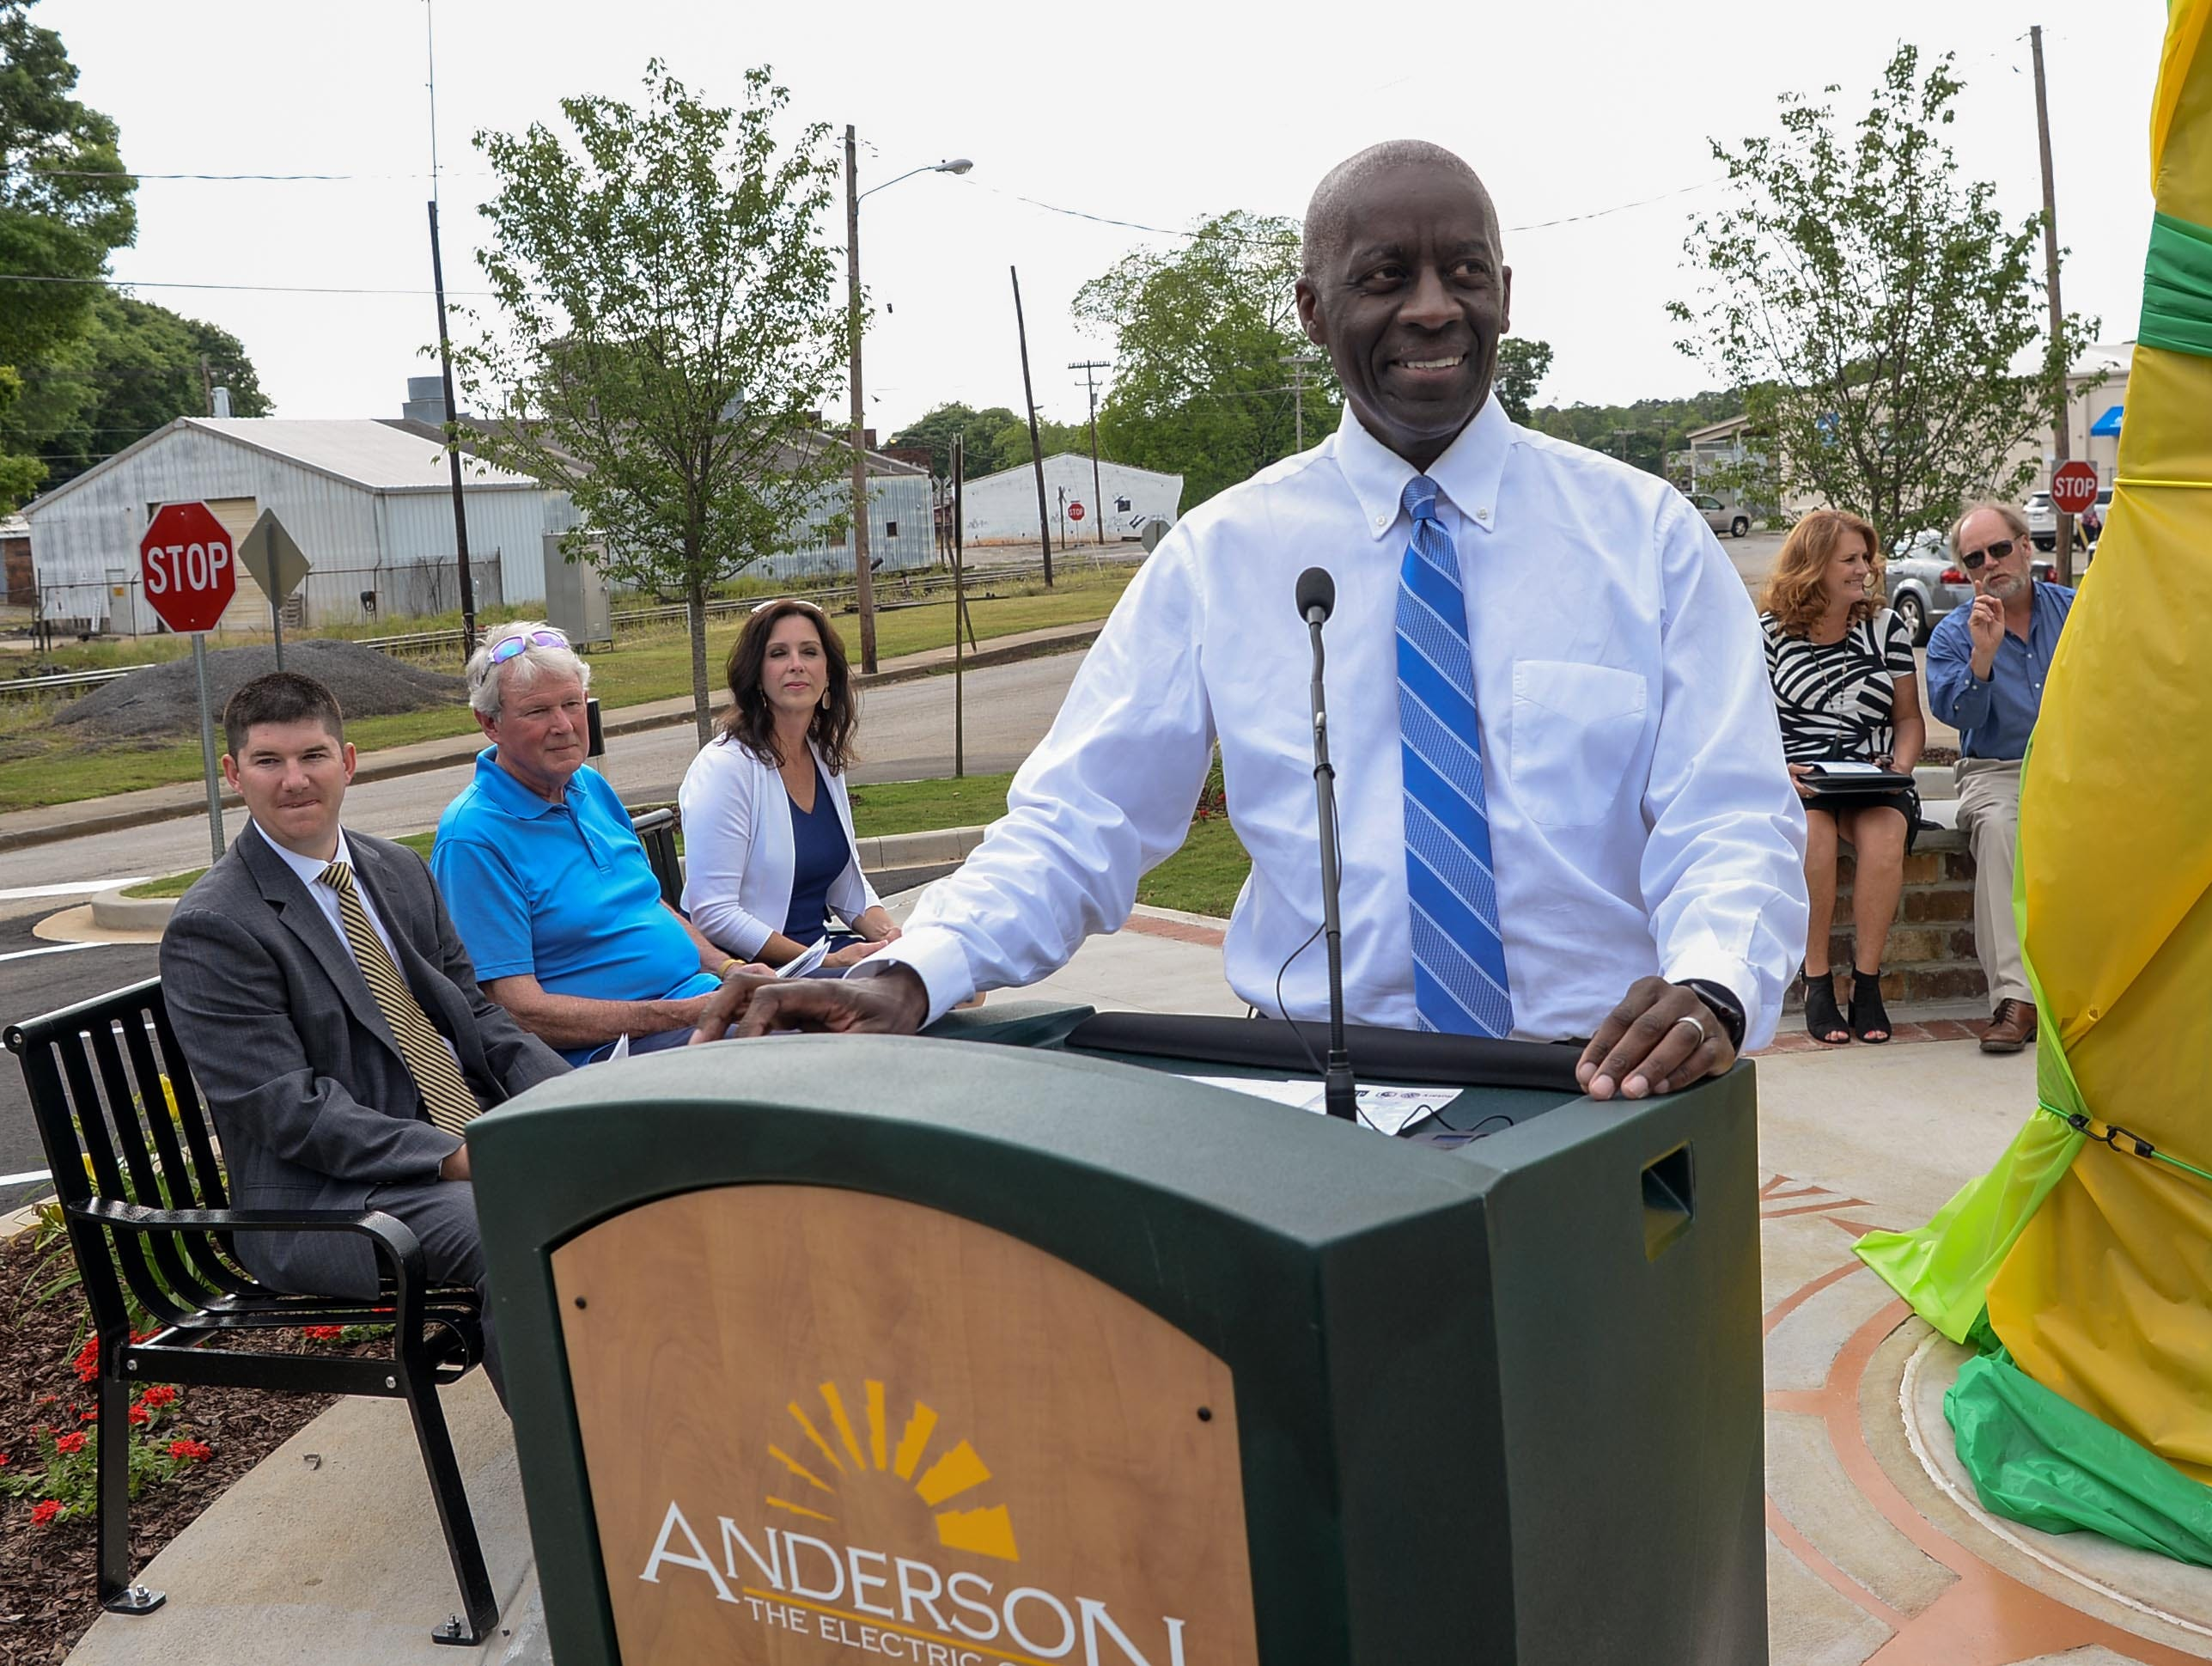 Mayor Terence Roberts gets ready to start the program to unveil the Under the bridge project called Textile Point in downtown Anderson Thursday, May 9, 2019. Scott Foster of Anderson designed the monument honoring years of textile mills in Anderson, with support partners from To Benefit Anderson, South Carolina Heritage Corridor, the Rotary Club of Anderson, and the City of Anderson.